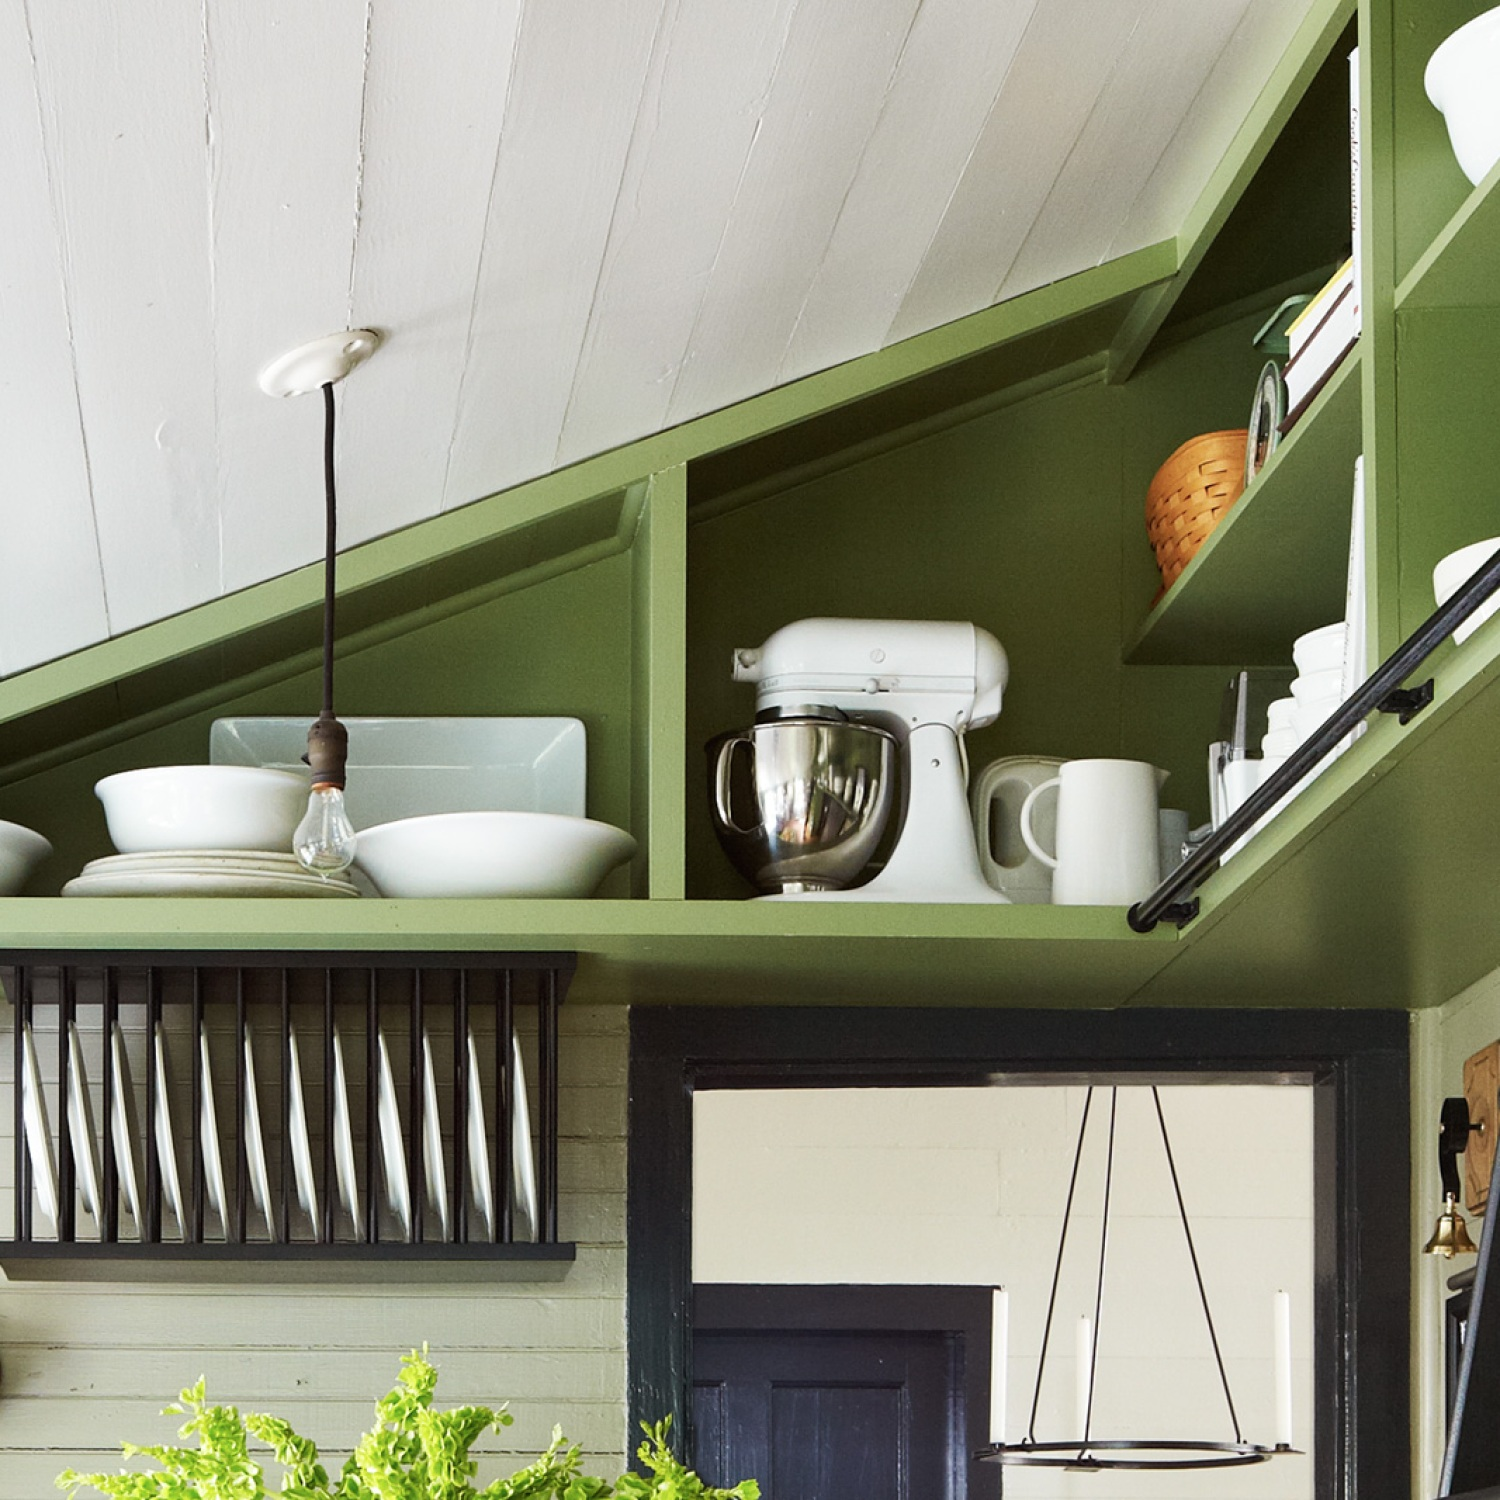 Kitchen with built-in rafter shelving